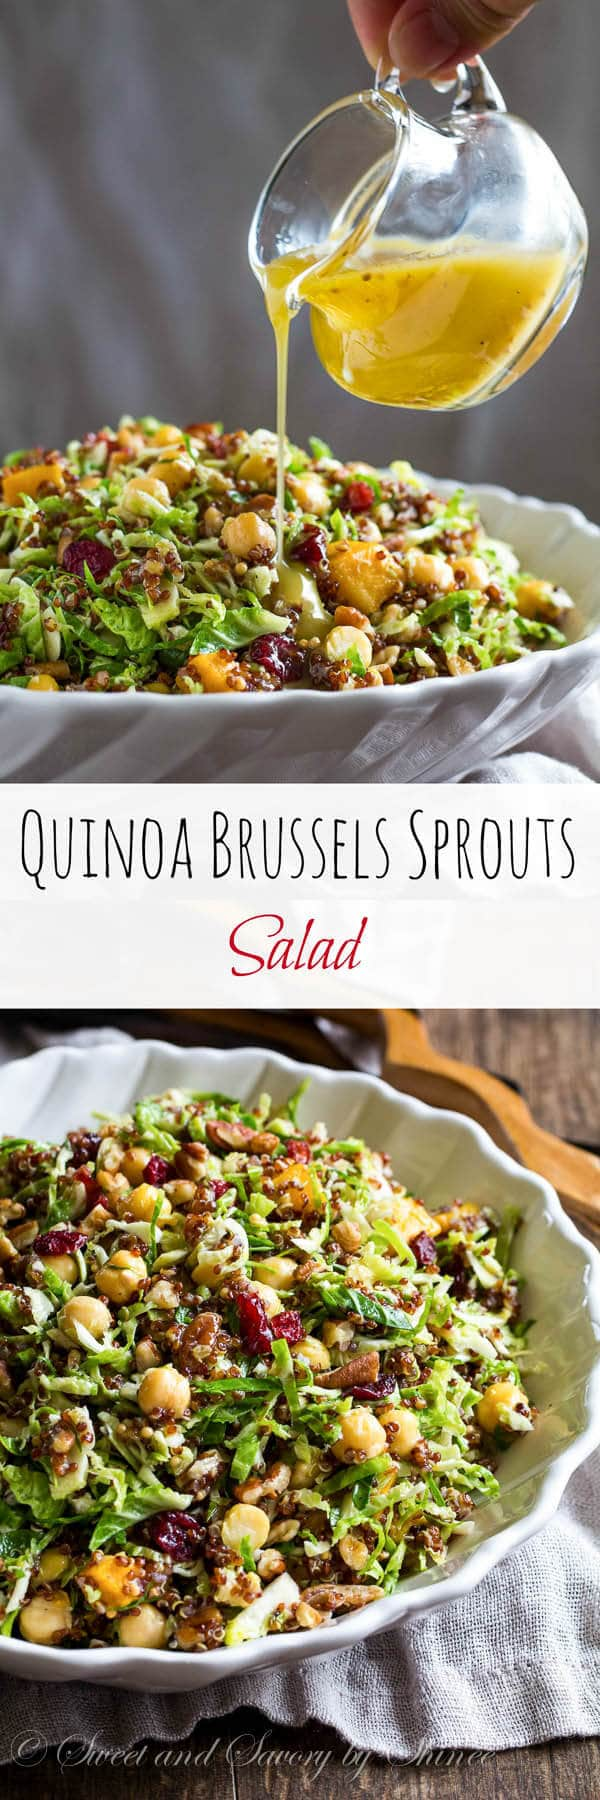 flavor in this festive quinoa brussels sprouts salad. Who said salad ...